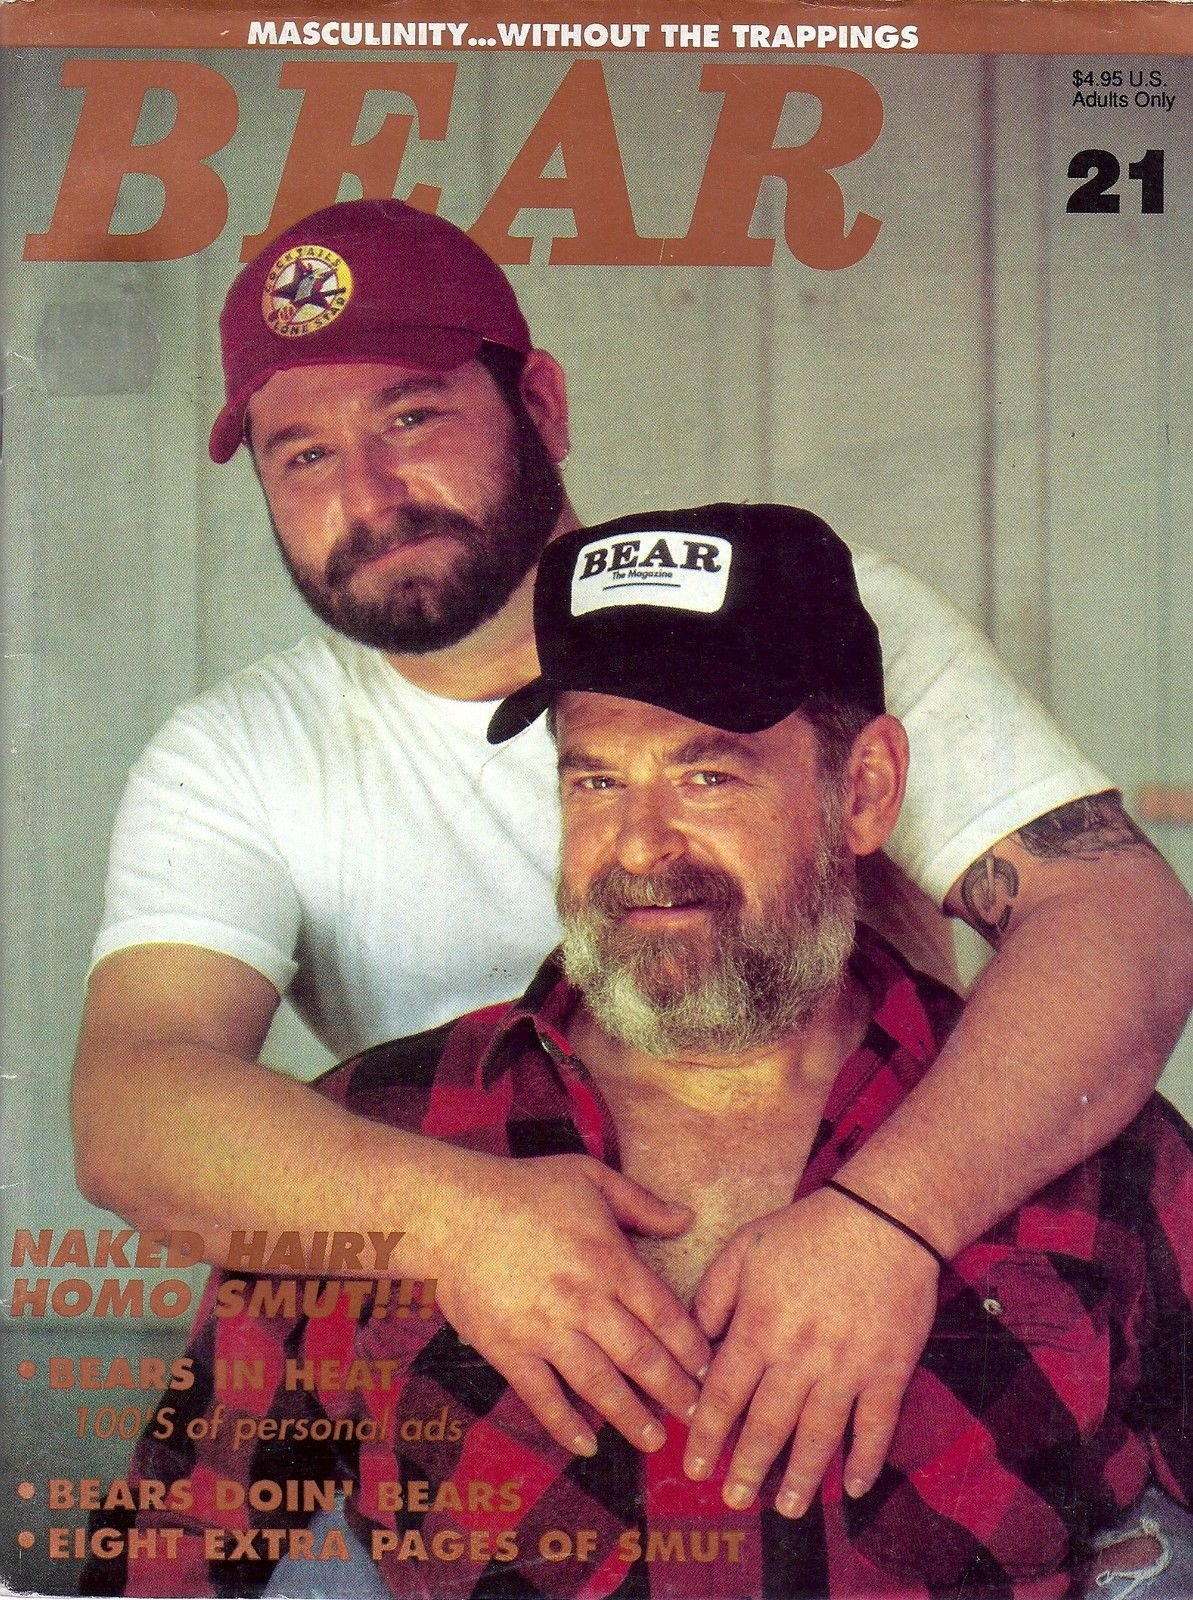 Naked Hairy Homo Smut l Mark Sessions l Adult Gay Male Interest - 1992 Bear  Magazine Issue #21 Single Issue Magazine – 1992